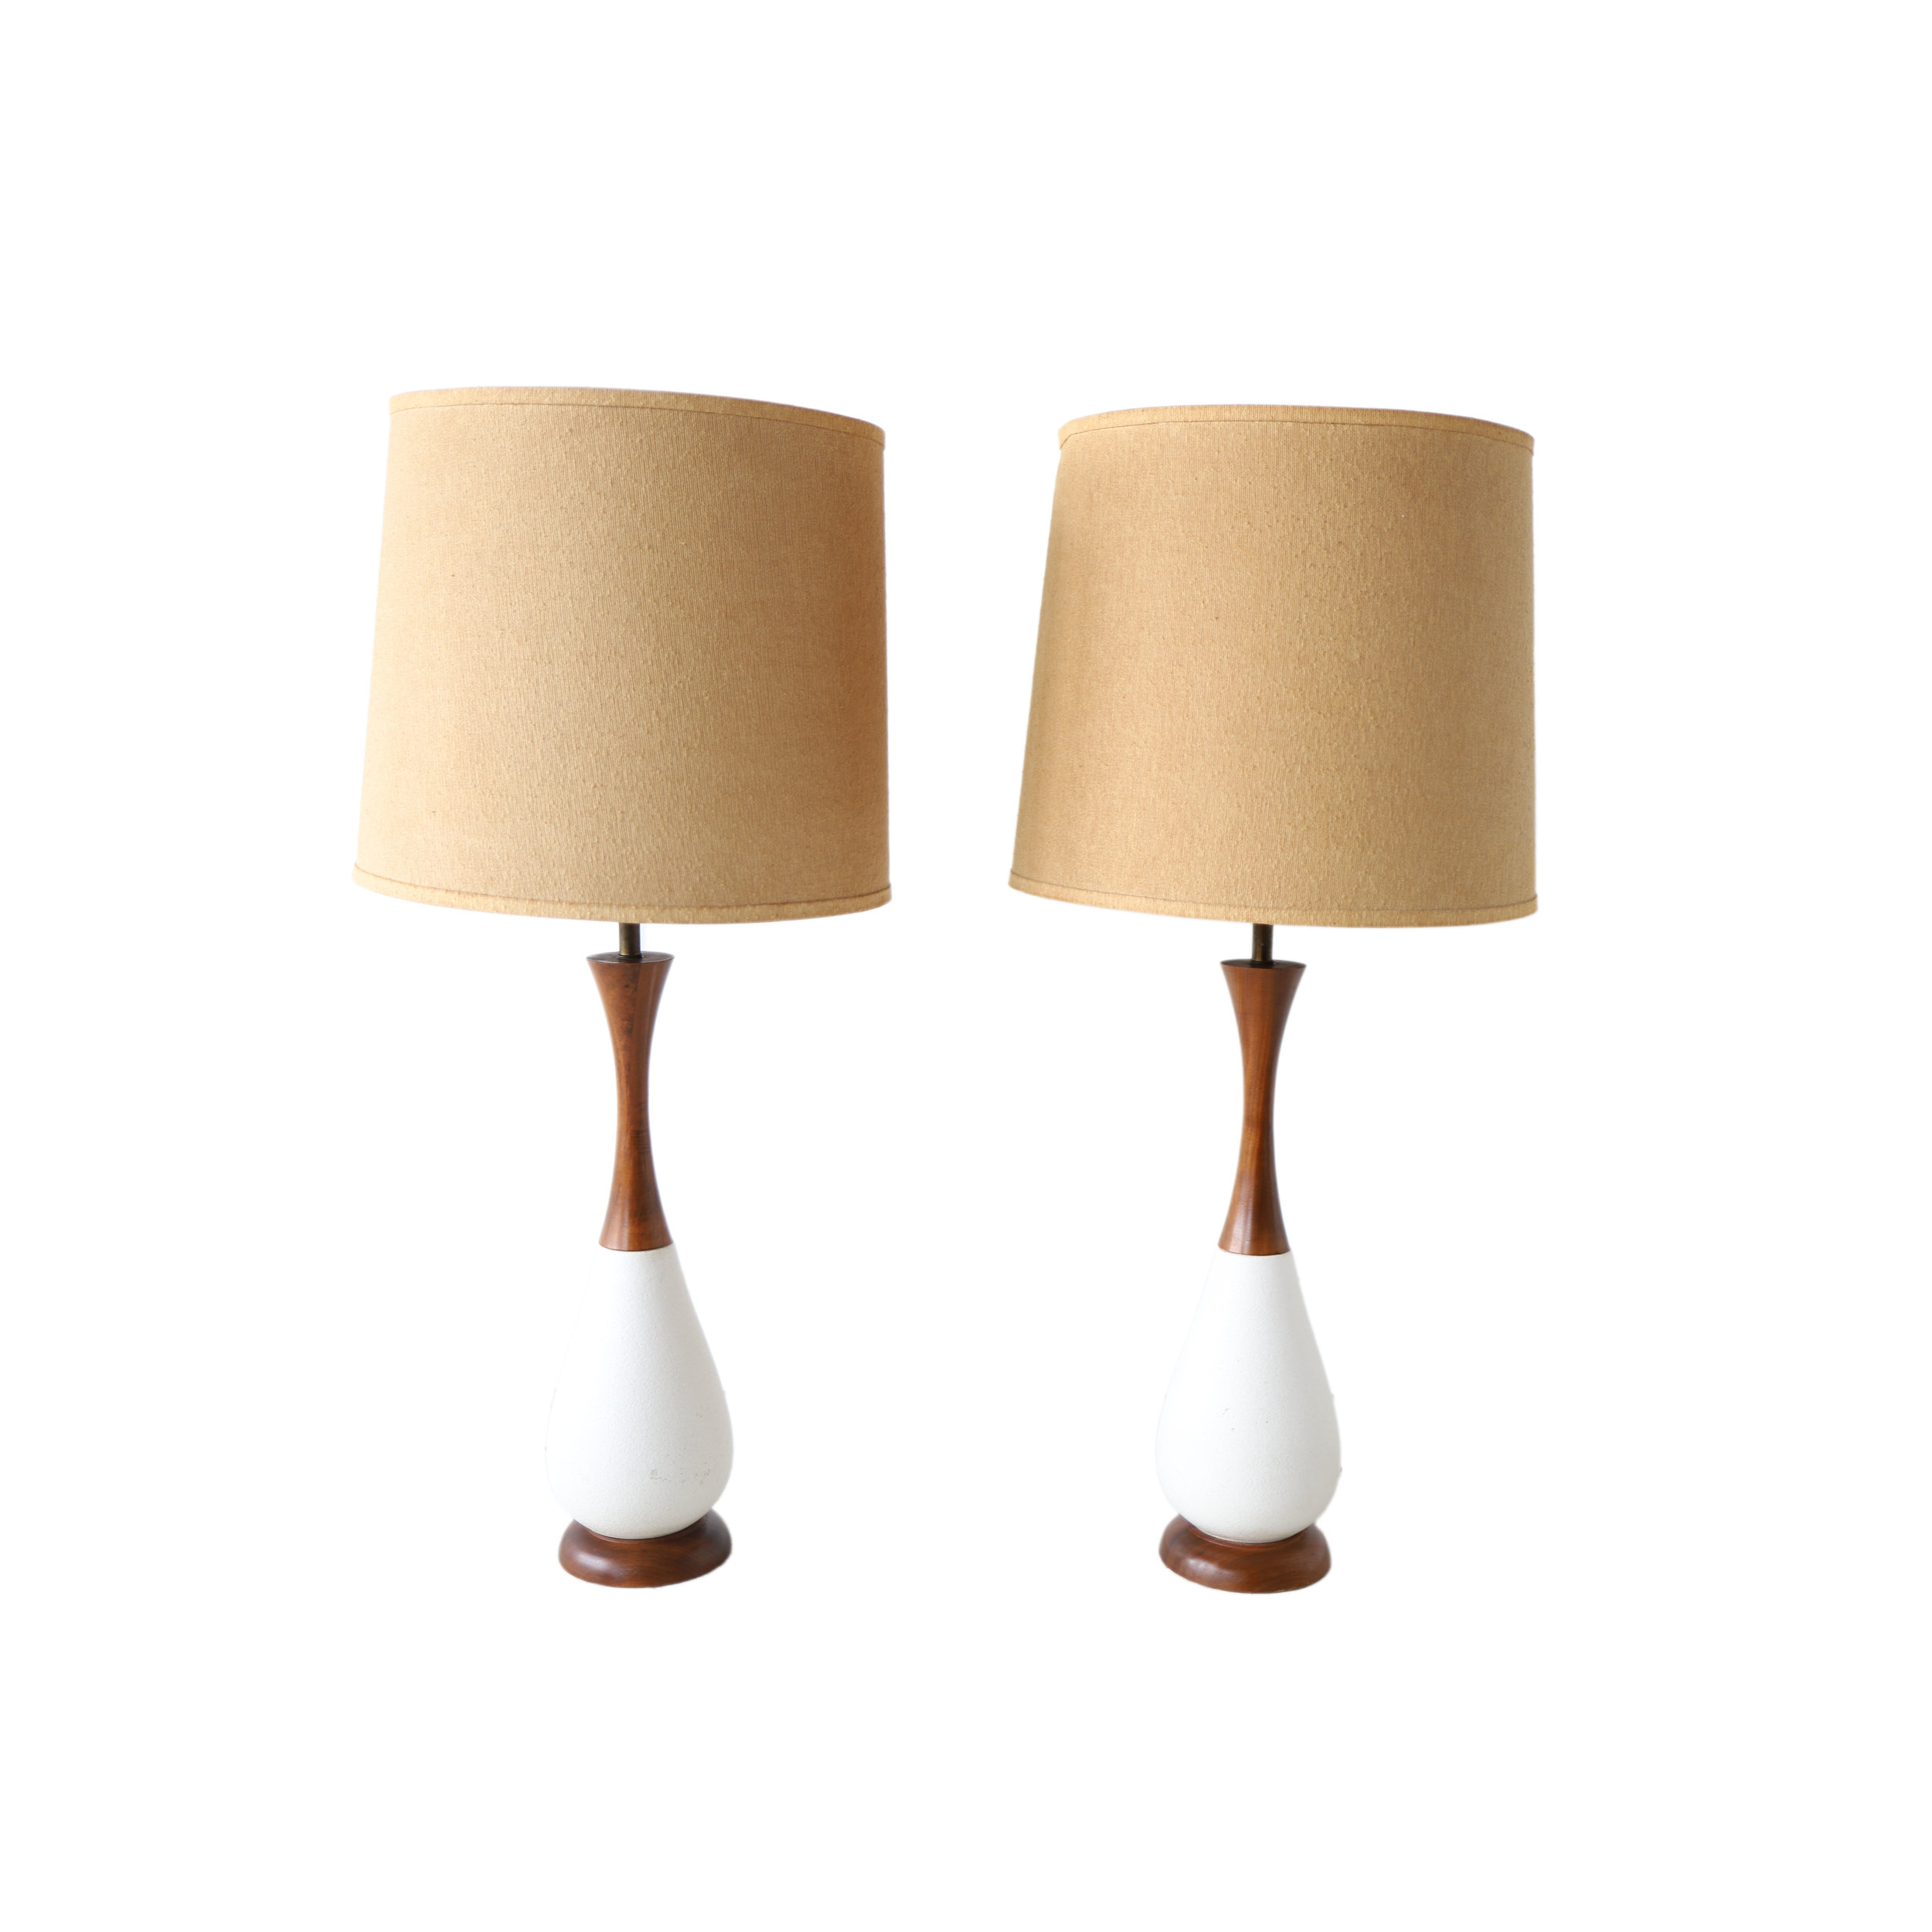 At 1st Sight New Products Pair Of Vintage Mid Century Modern White Ceramic And Walnut Table Lamps